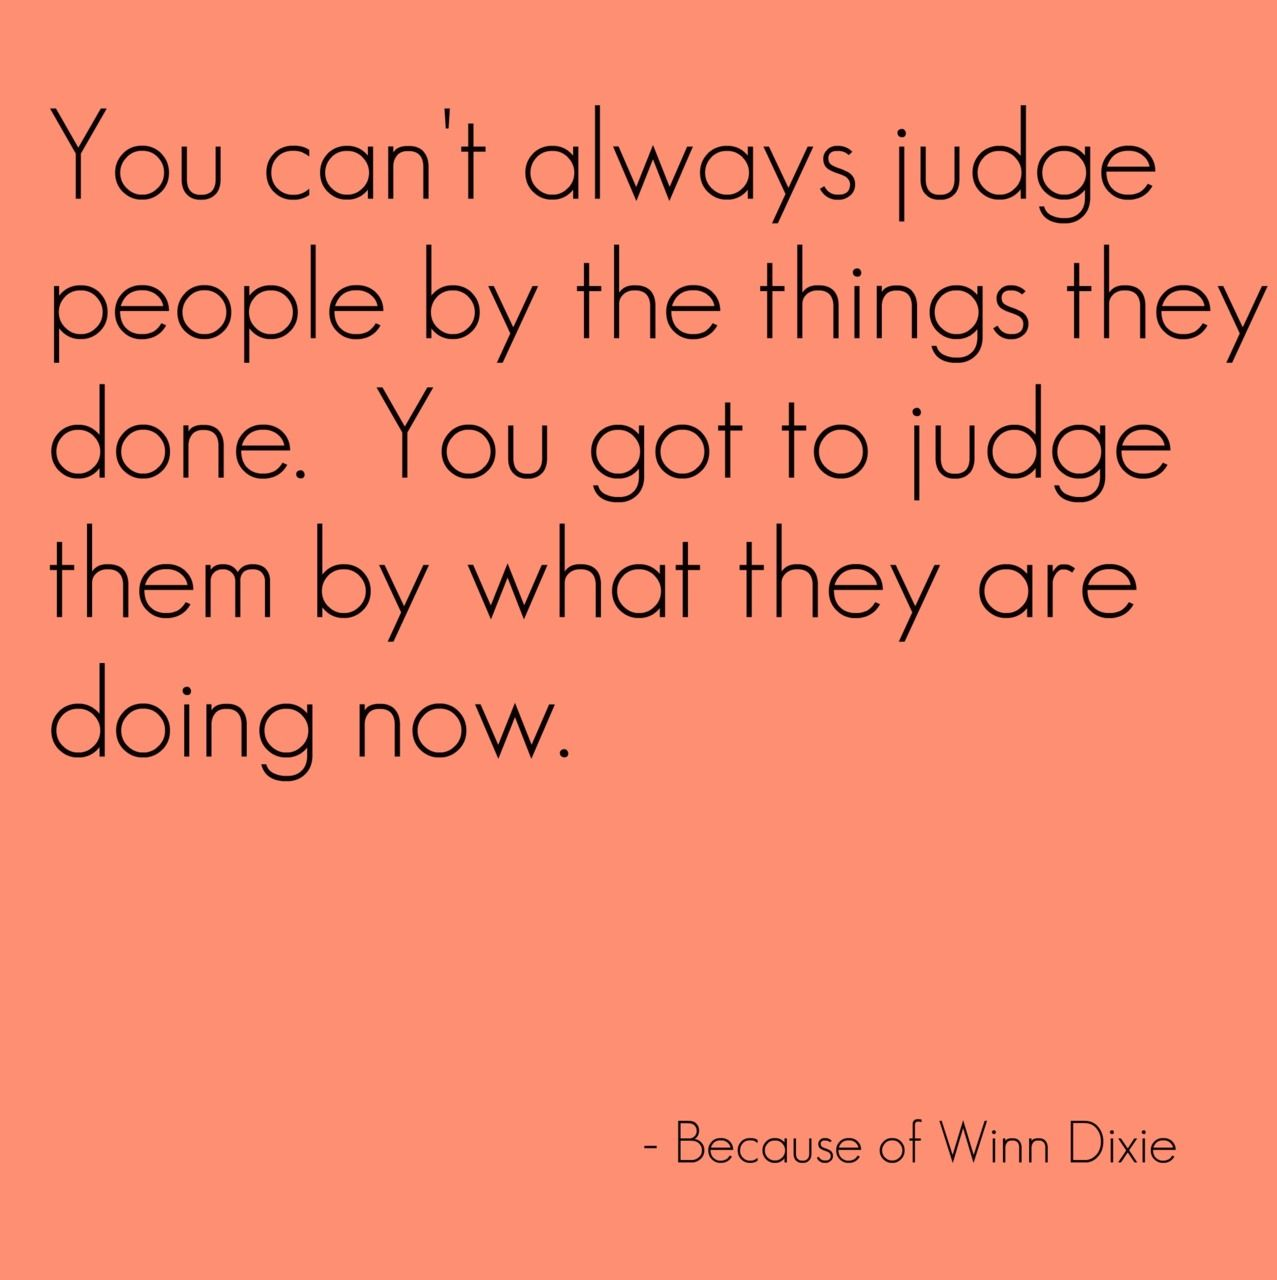 Quotes From Tuck Everlasting Book With Page Numbers: Because Of Winn Dixie Quotes - Google Search